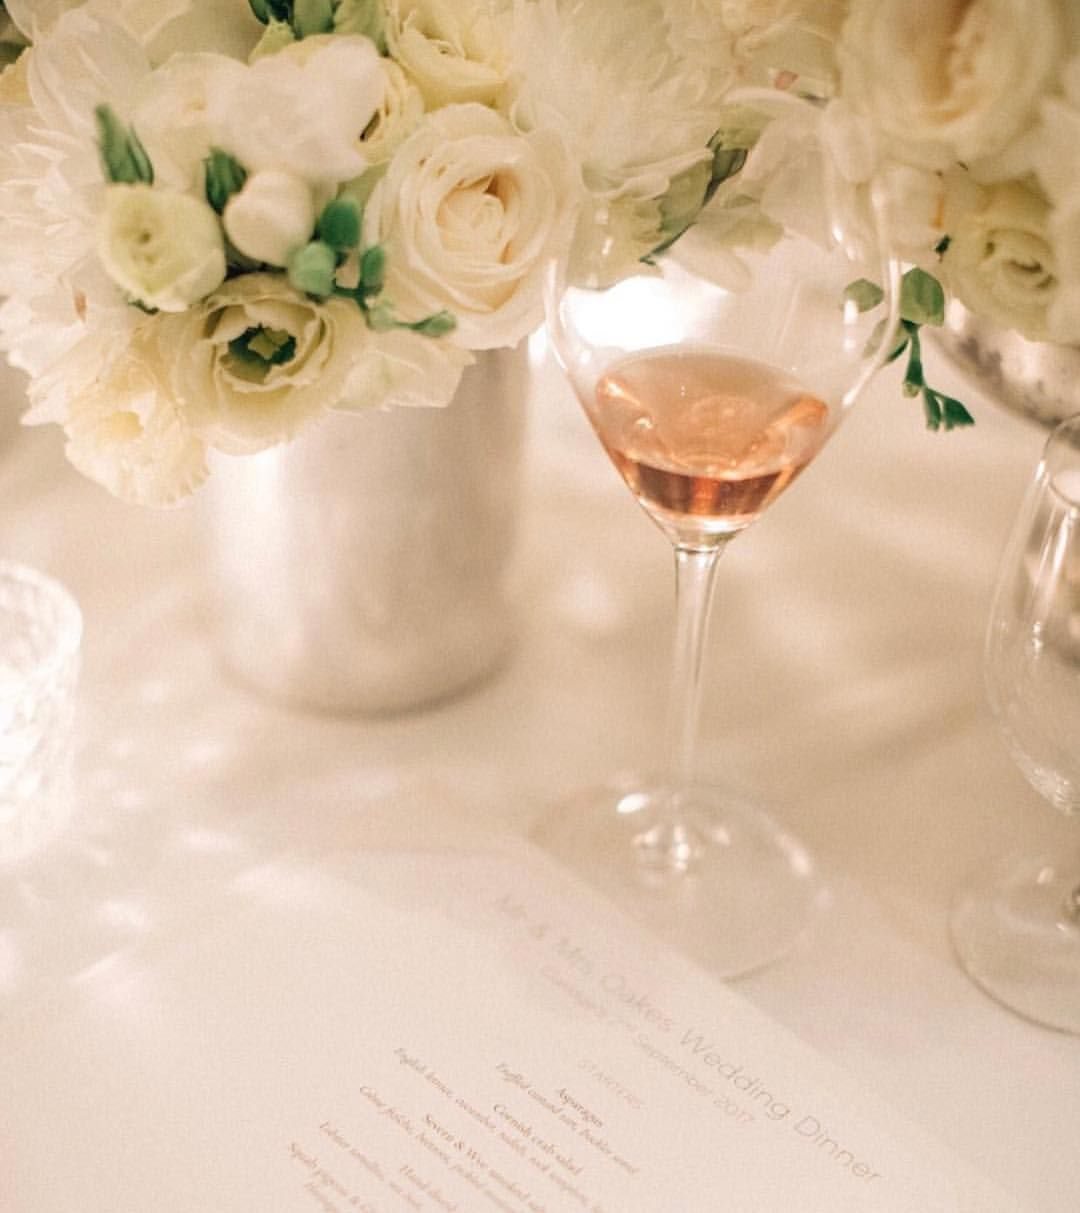 Adore these simple small vases and groups of flowers with